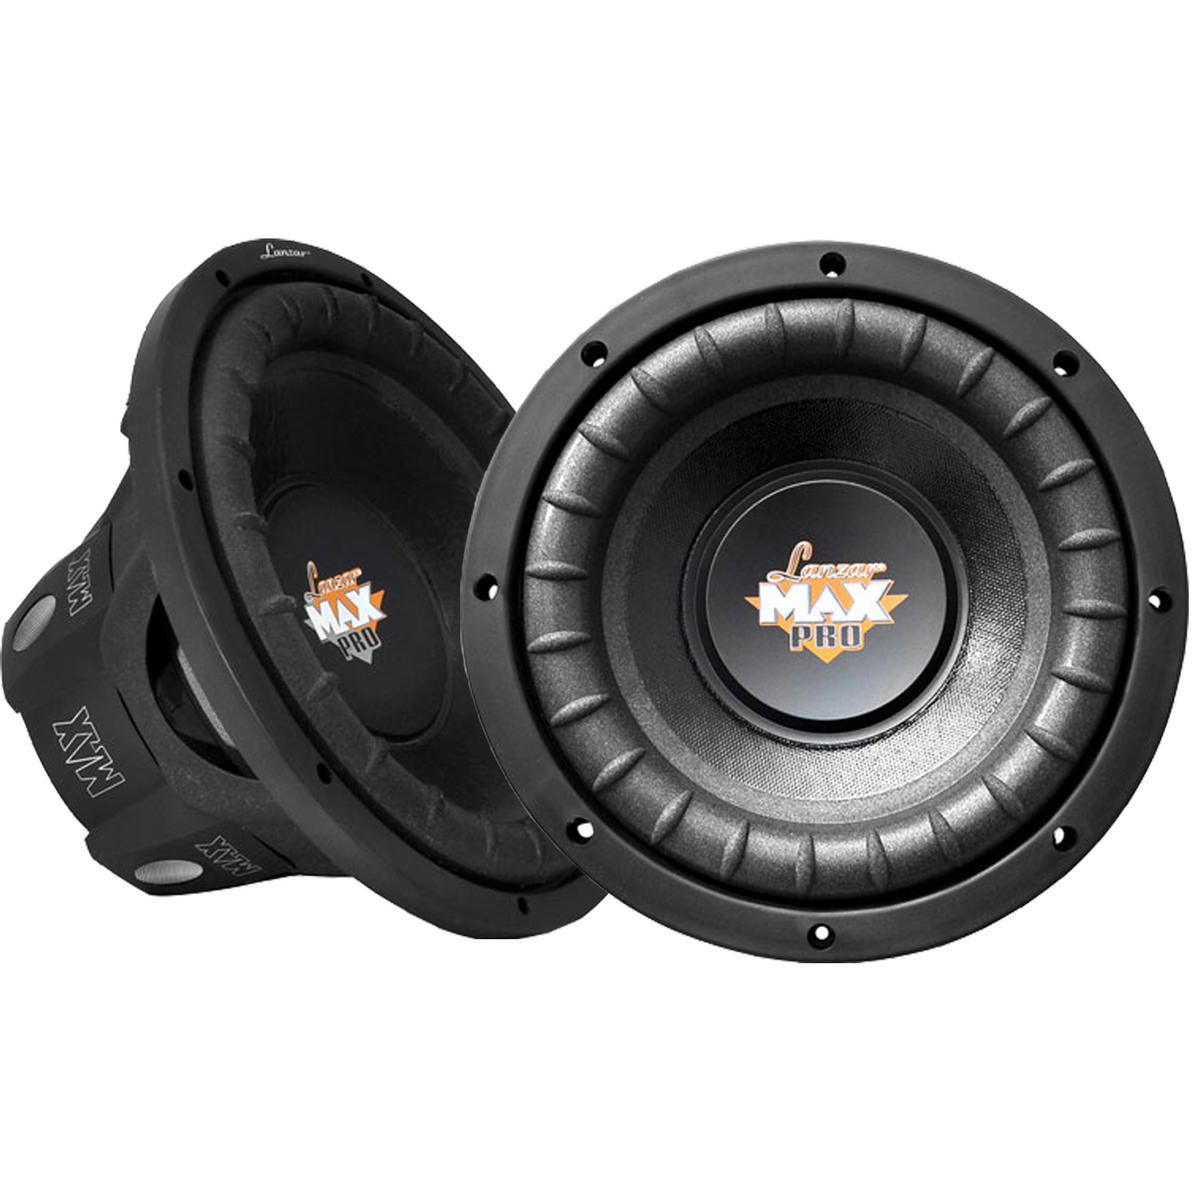 """Lanzar Max Pro Mid Bass Driver 8"""" 4 Ohm 1600w In Car Audio Subwoofers Sub Woofers"""